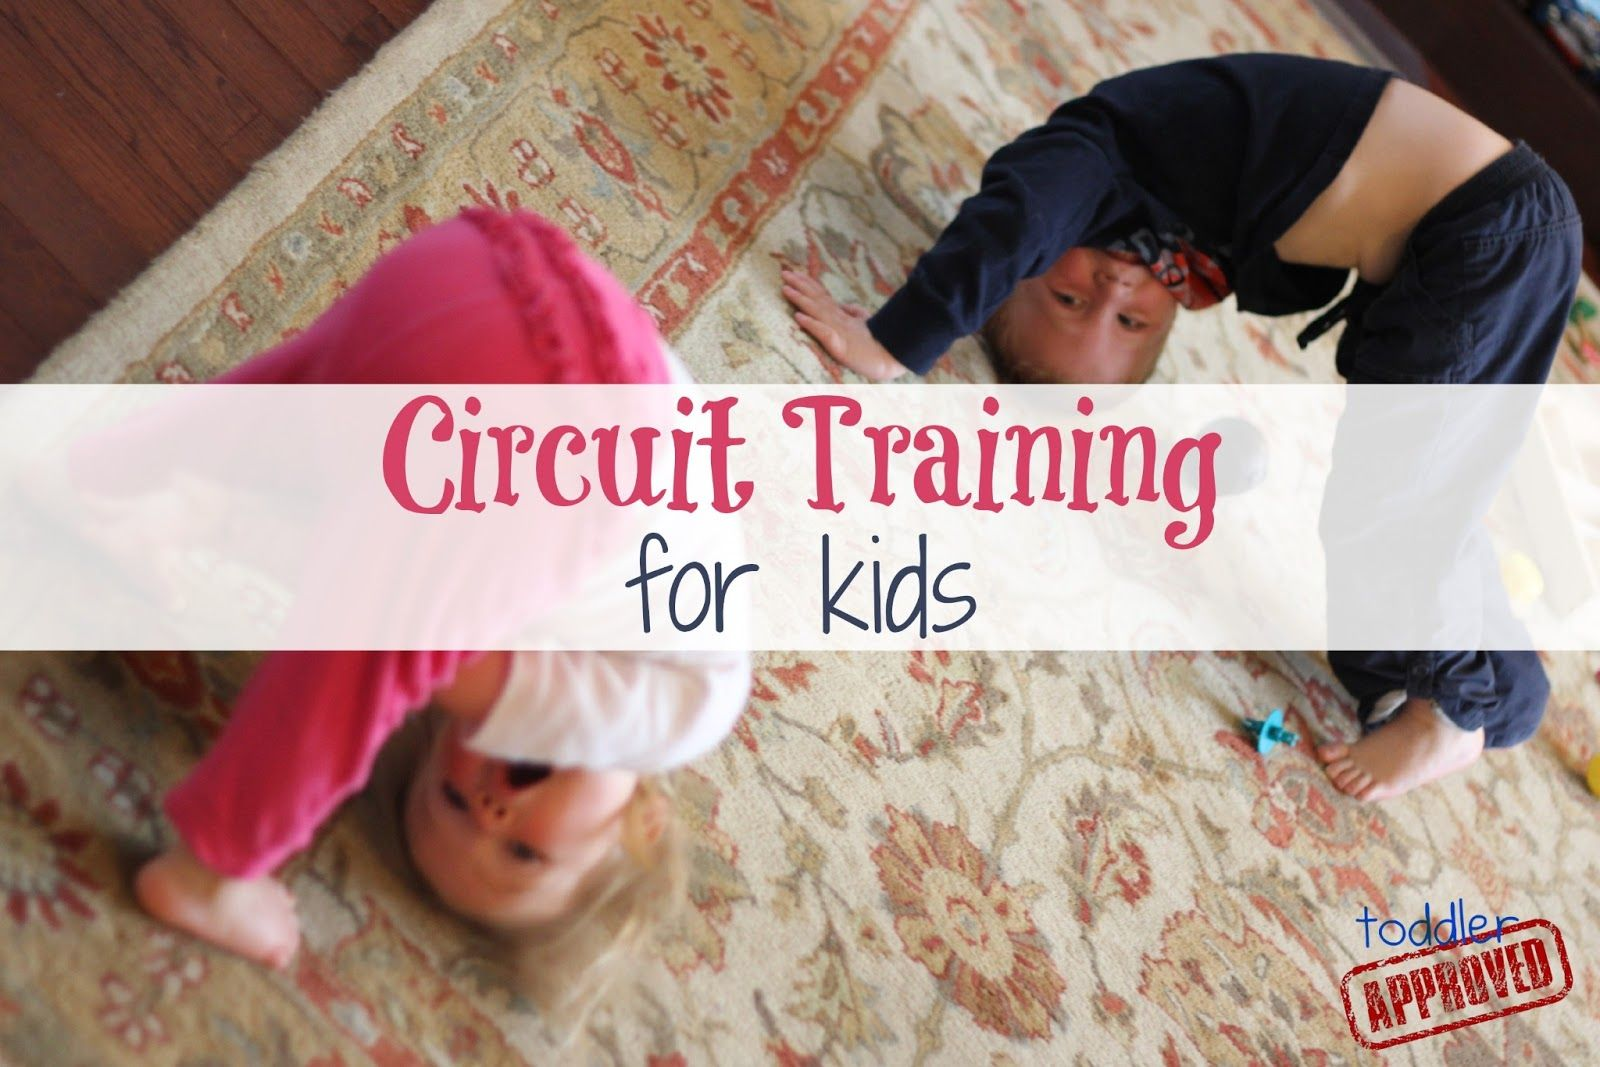 toddler approved circuit training for kids